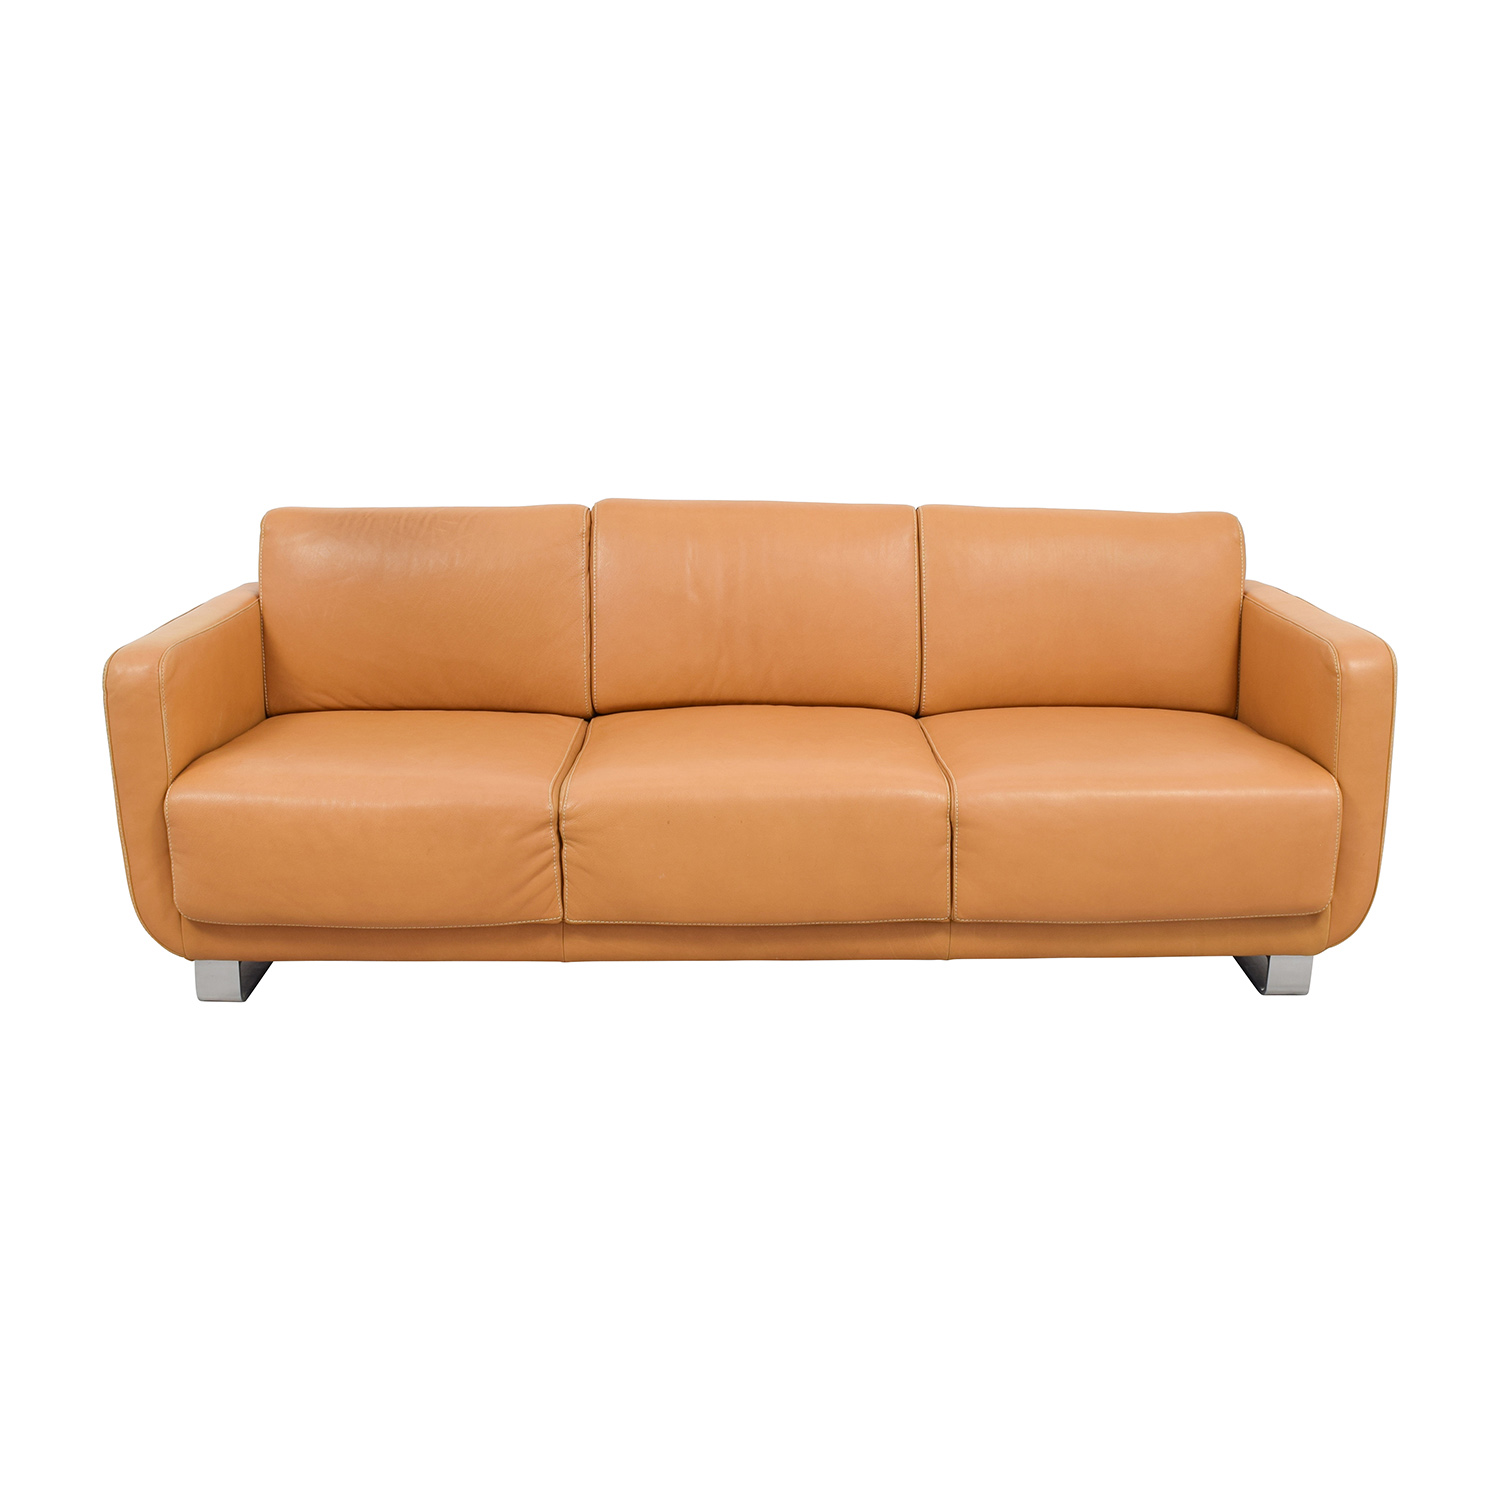 light brown leather reclining sofa versace home price 74 off w schillig